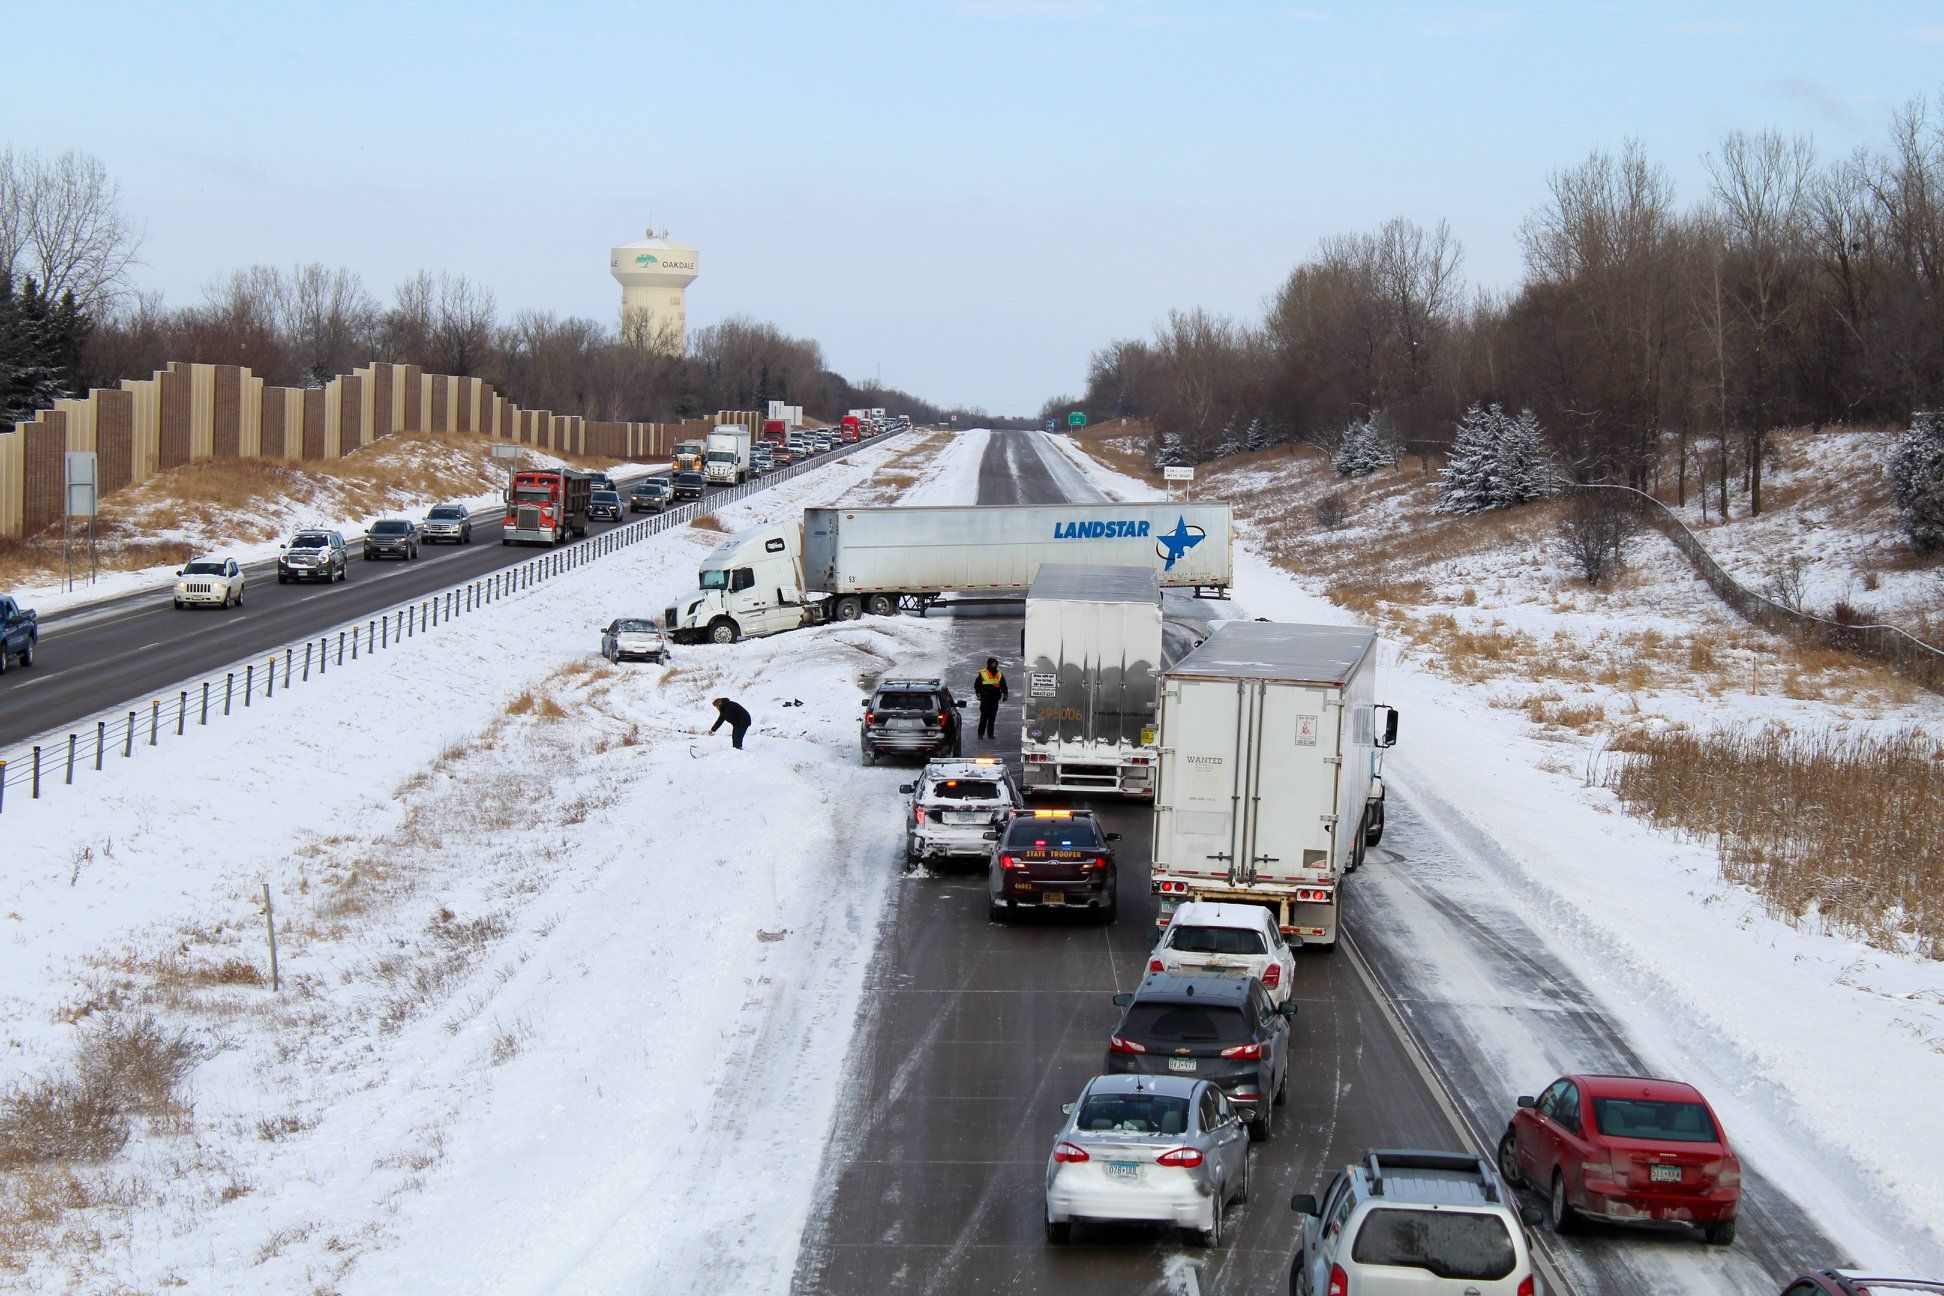 Slow down! Roads may look clear, but icy spots can be